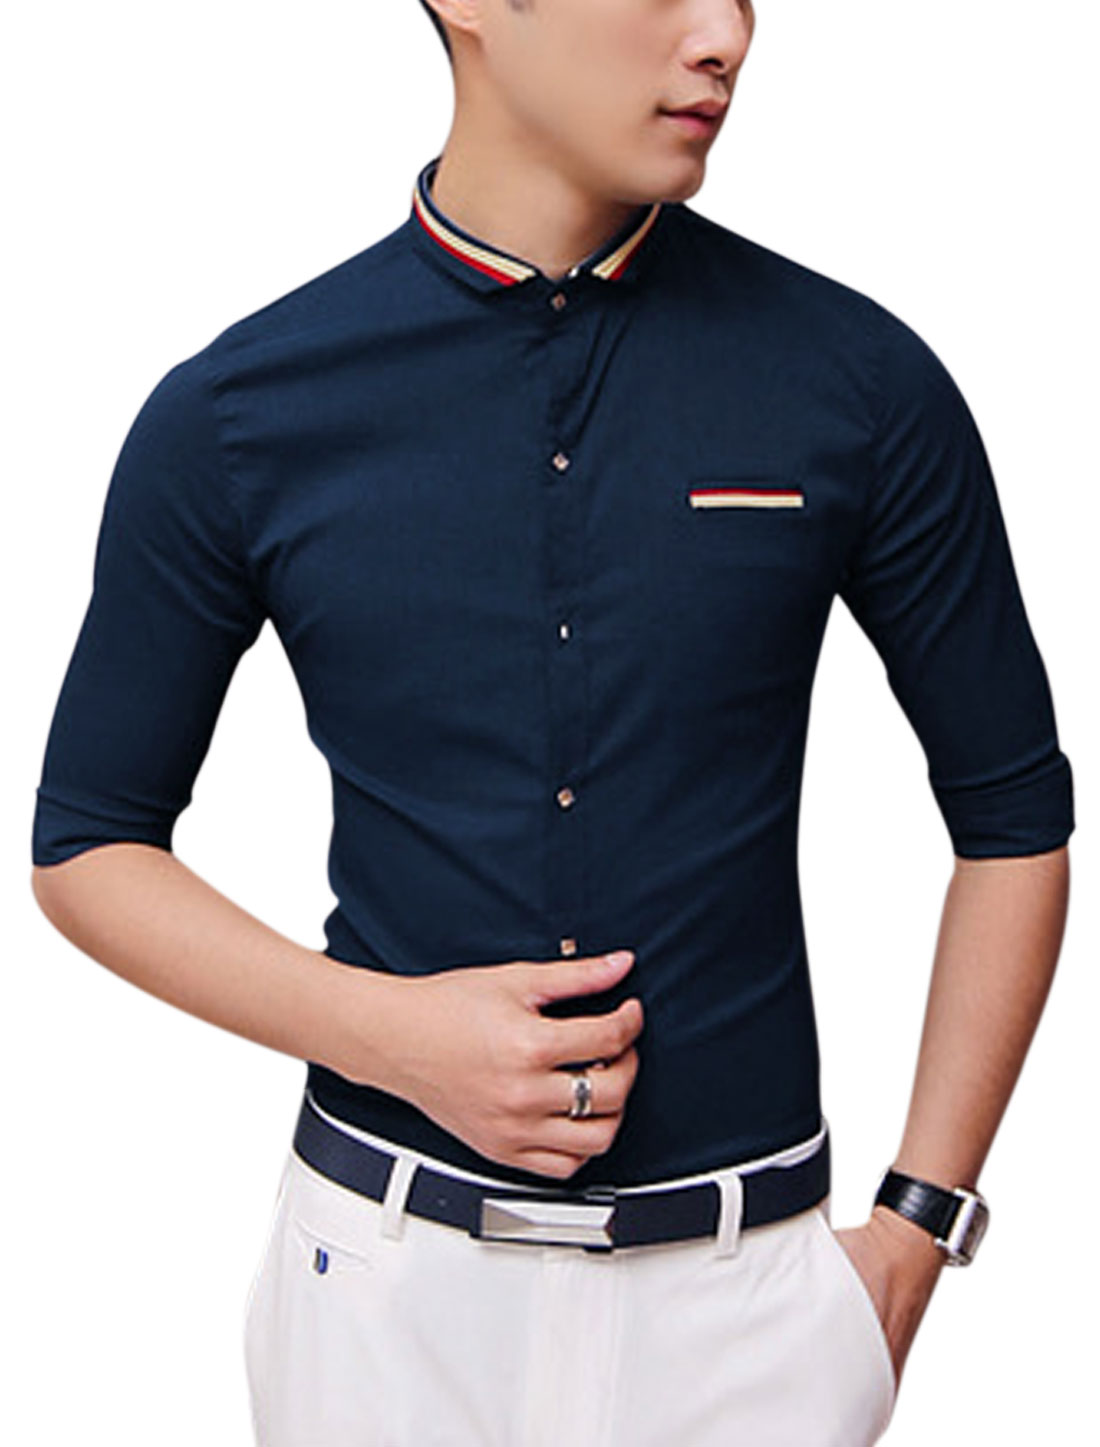 Men Elbow Sleeve Stand Collar Button Up Slim Fit Casual Shirt Navy Blue S